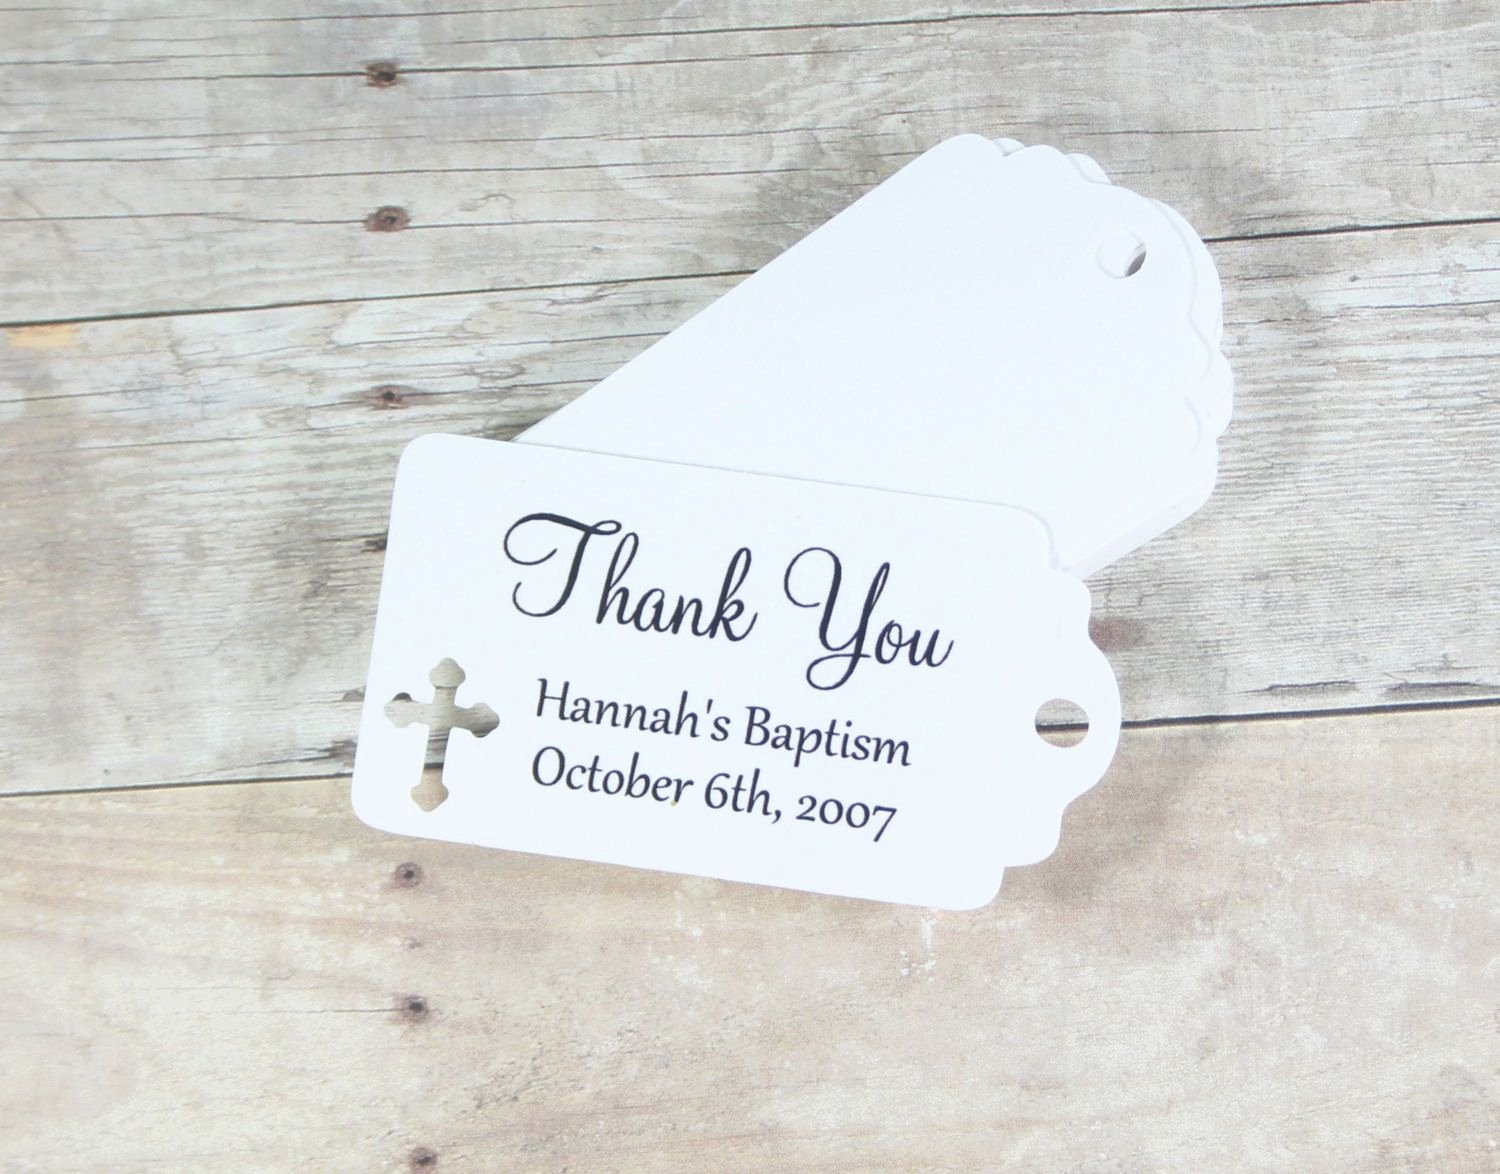 Baptism Thank You Tags Inspirational Small White Baptism Tags Set Of 20 Thank You Tags for Confirmation White Christening Favor